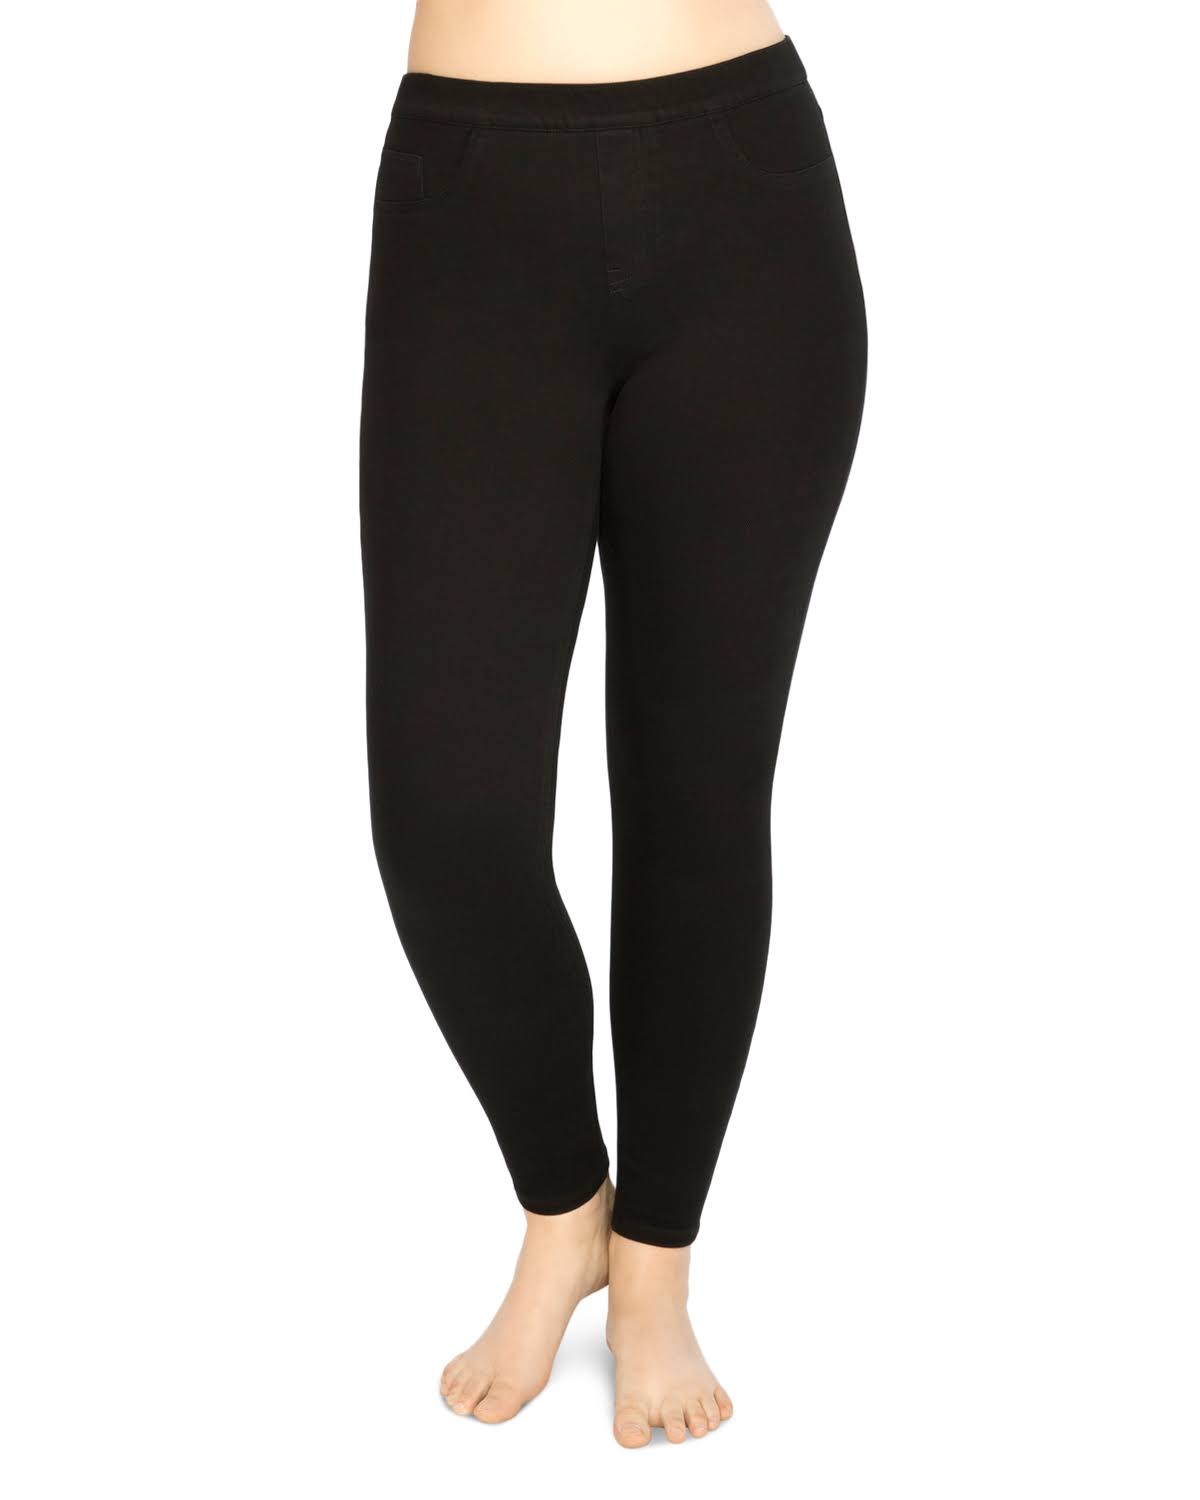 Spanx Plus Jean-ish Ankle Leggings, Womens, 2X, Black